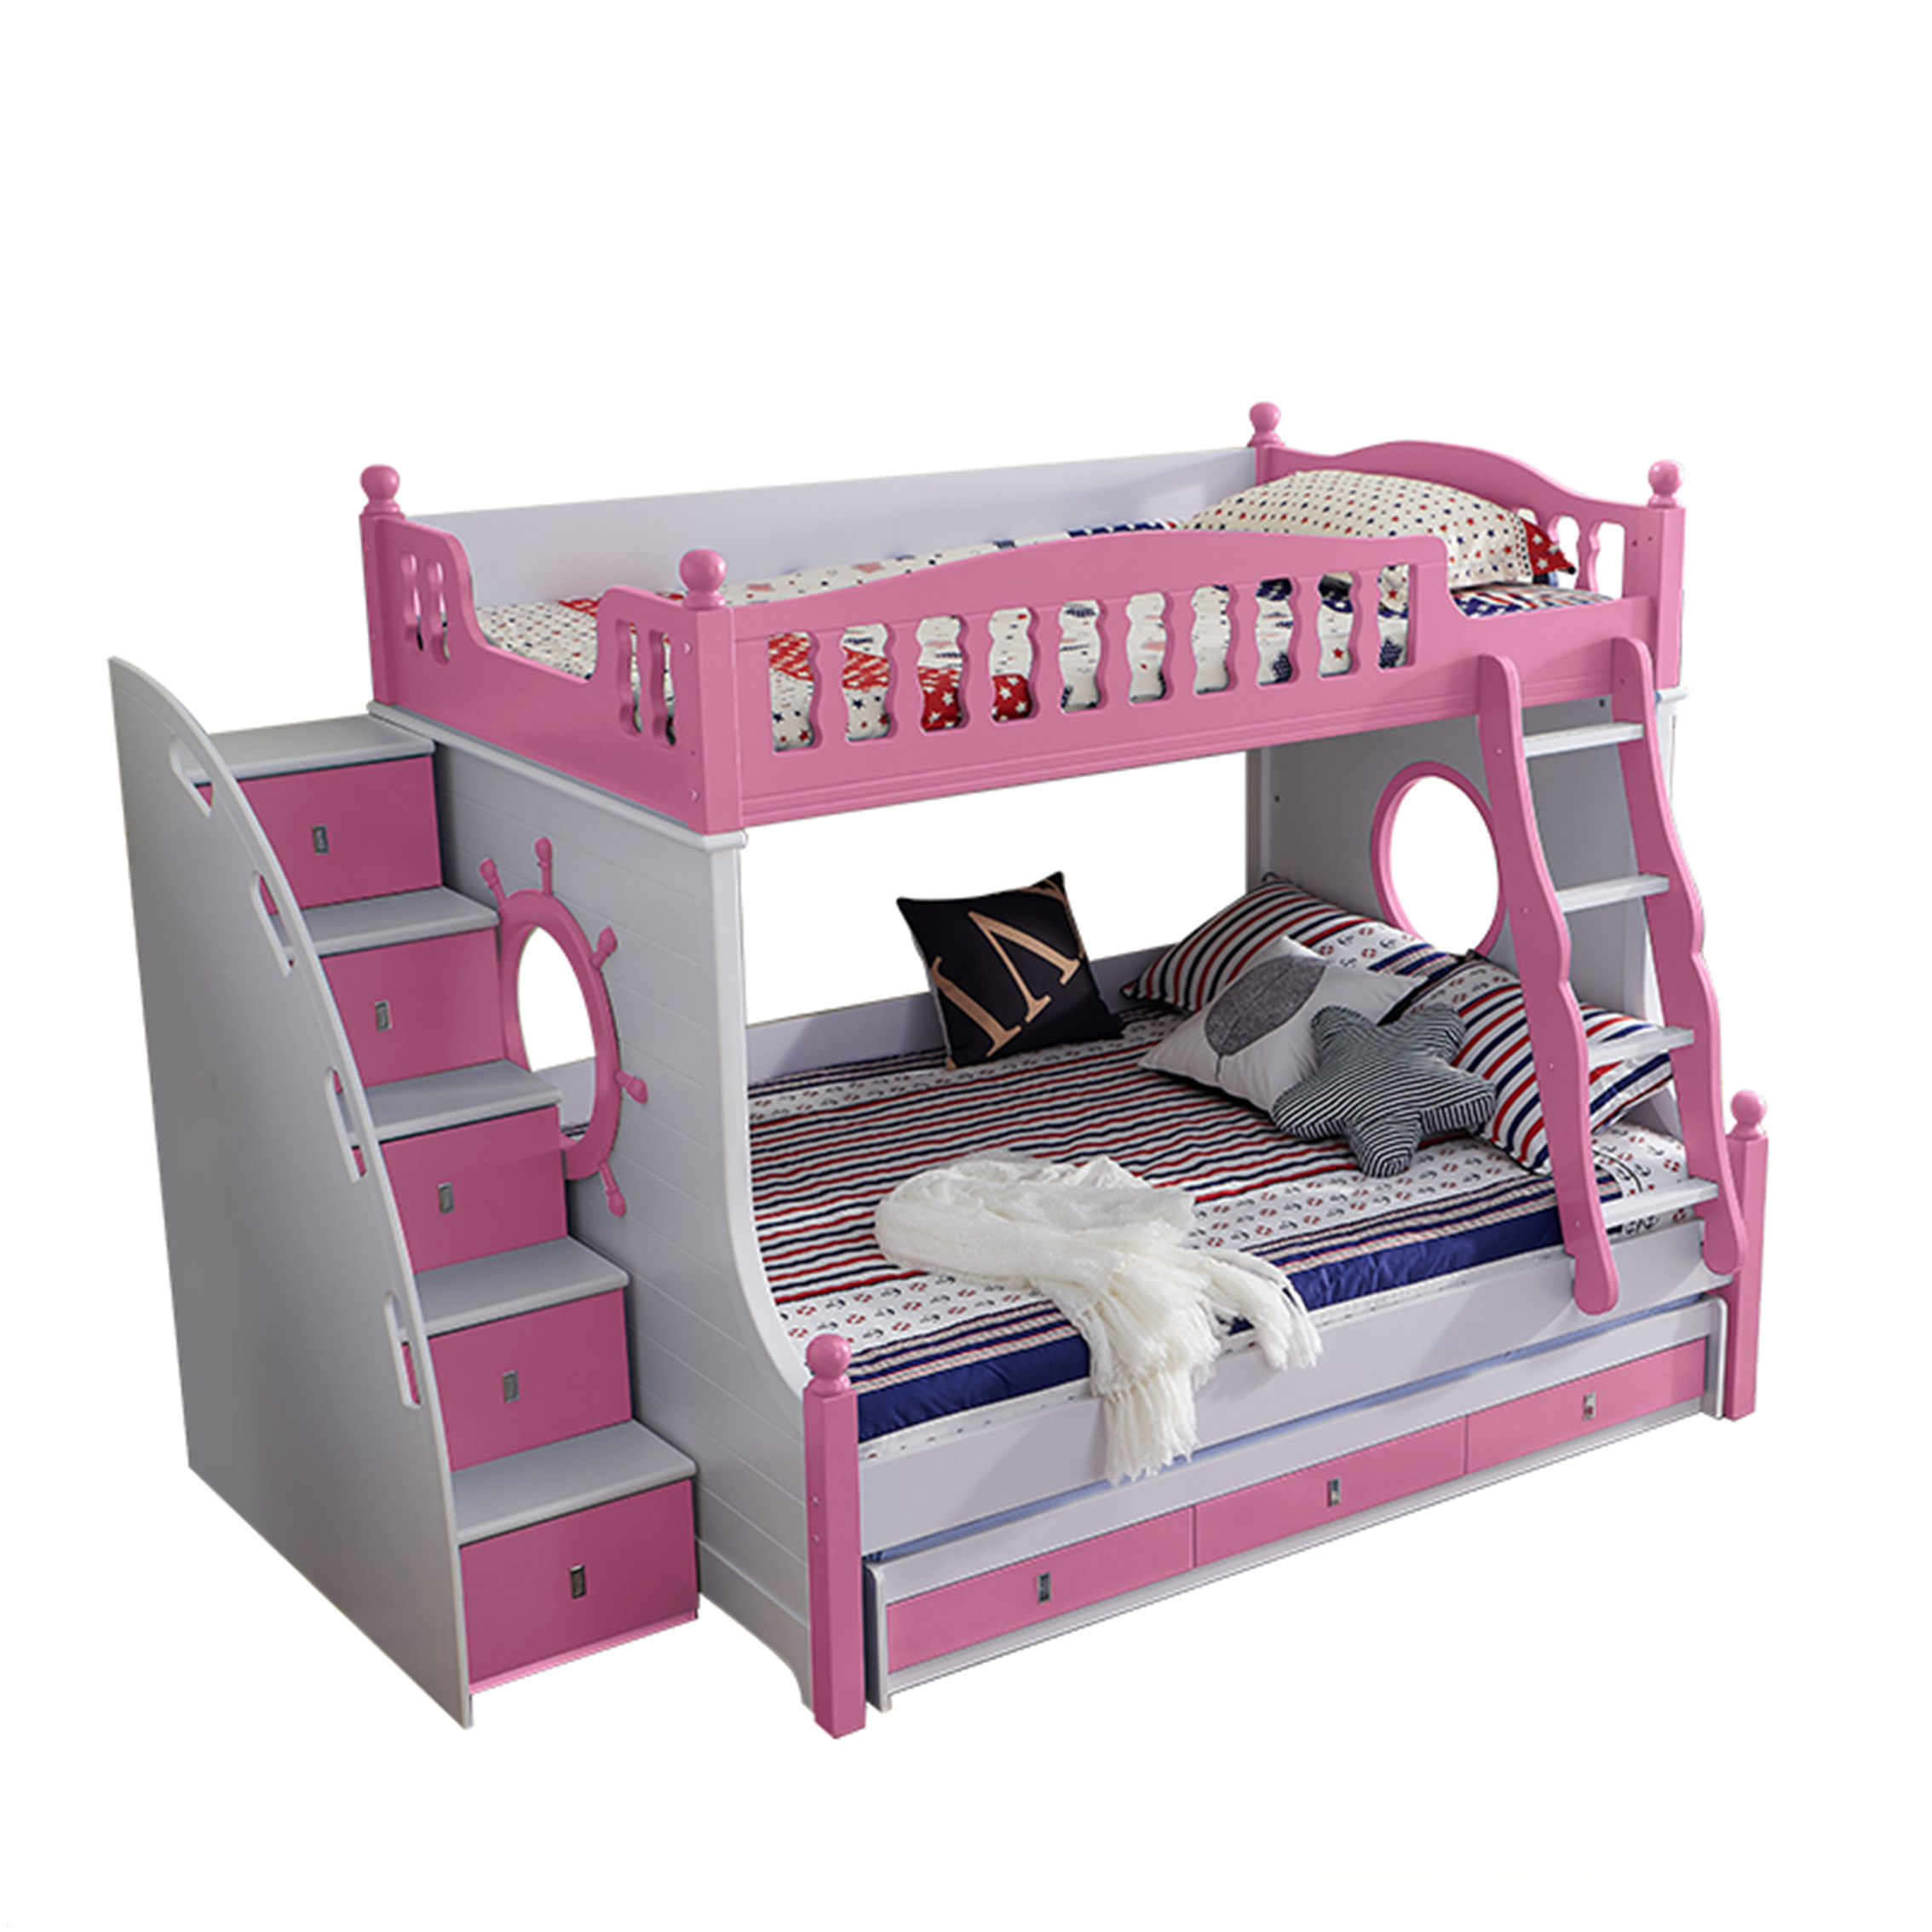 Picture of: Red Color Bunk Bed New Design Furniture Big Lots Kids Furniture Buy Bunk Bed Red Color Bunk Bed Red Color Bunk Bed New Design Furniture Product On Alibaba Com